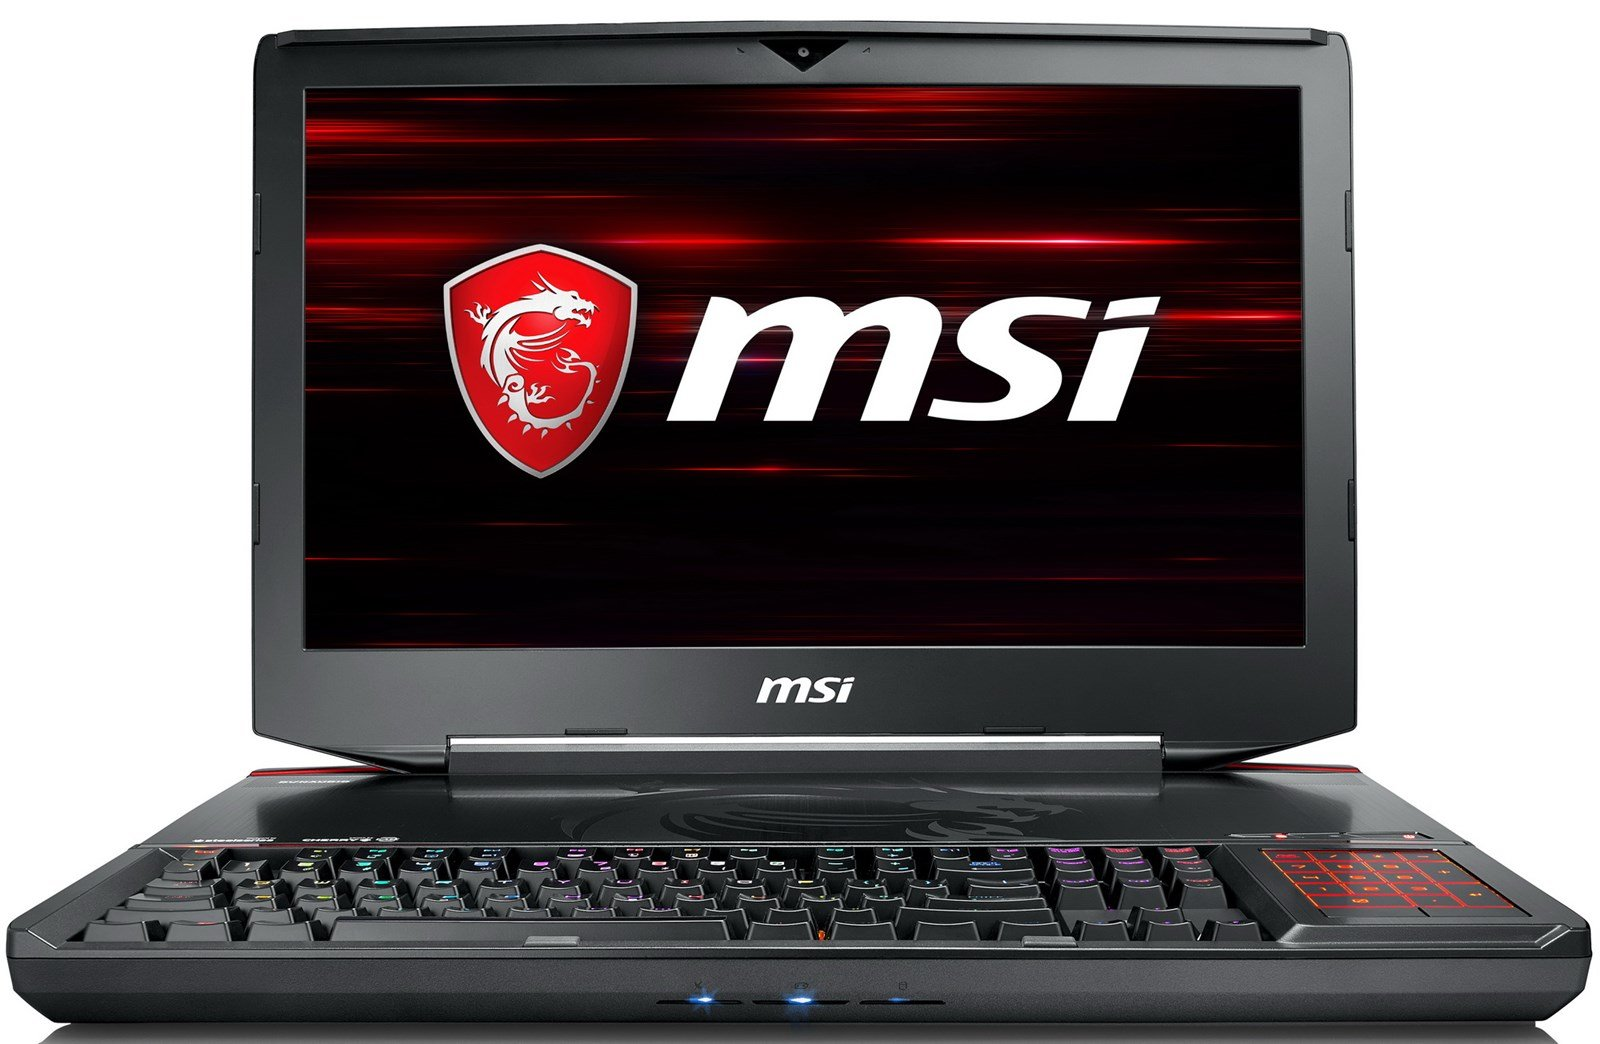 MSI GT83 TITAN-027 Enthusiast (i7-8850H, 32GB RAM, 4TB NVMe SSD + 1TB HDD, GTX 1080 SLI 16GB, 18.4″ Full HD, Windows 10) VR Ready Gaming Notebook